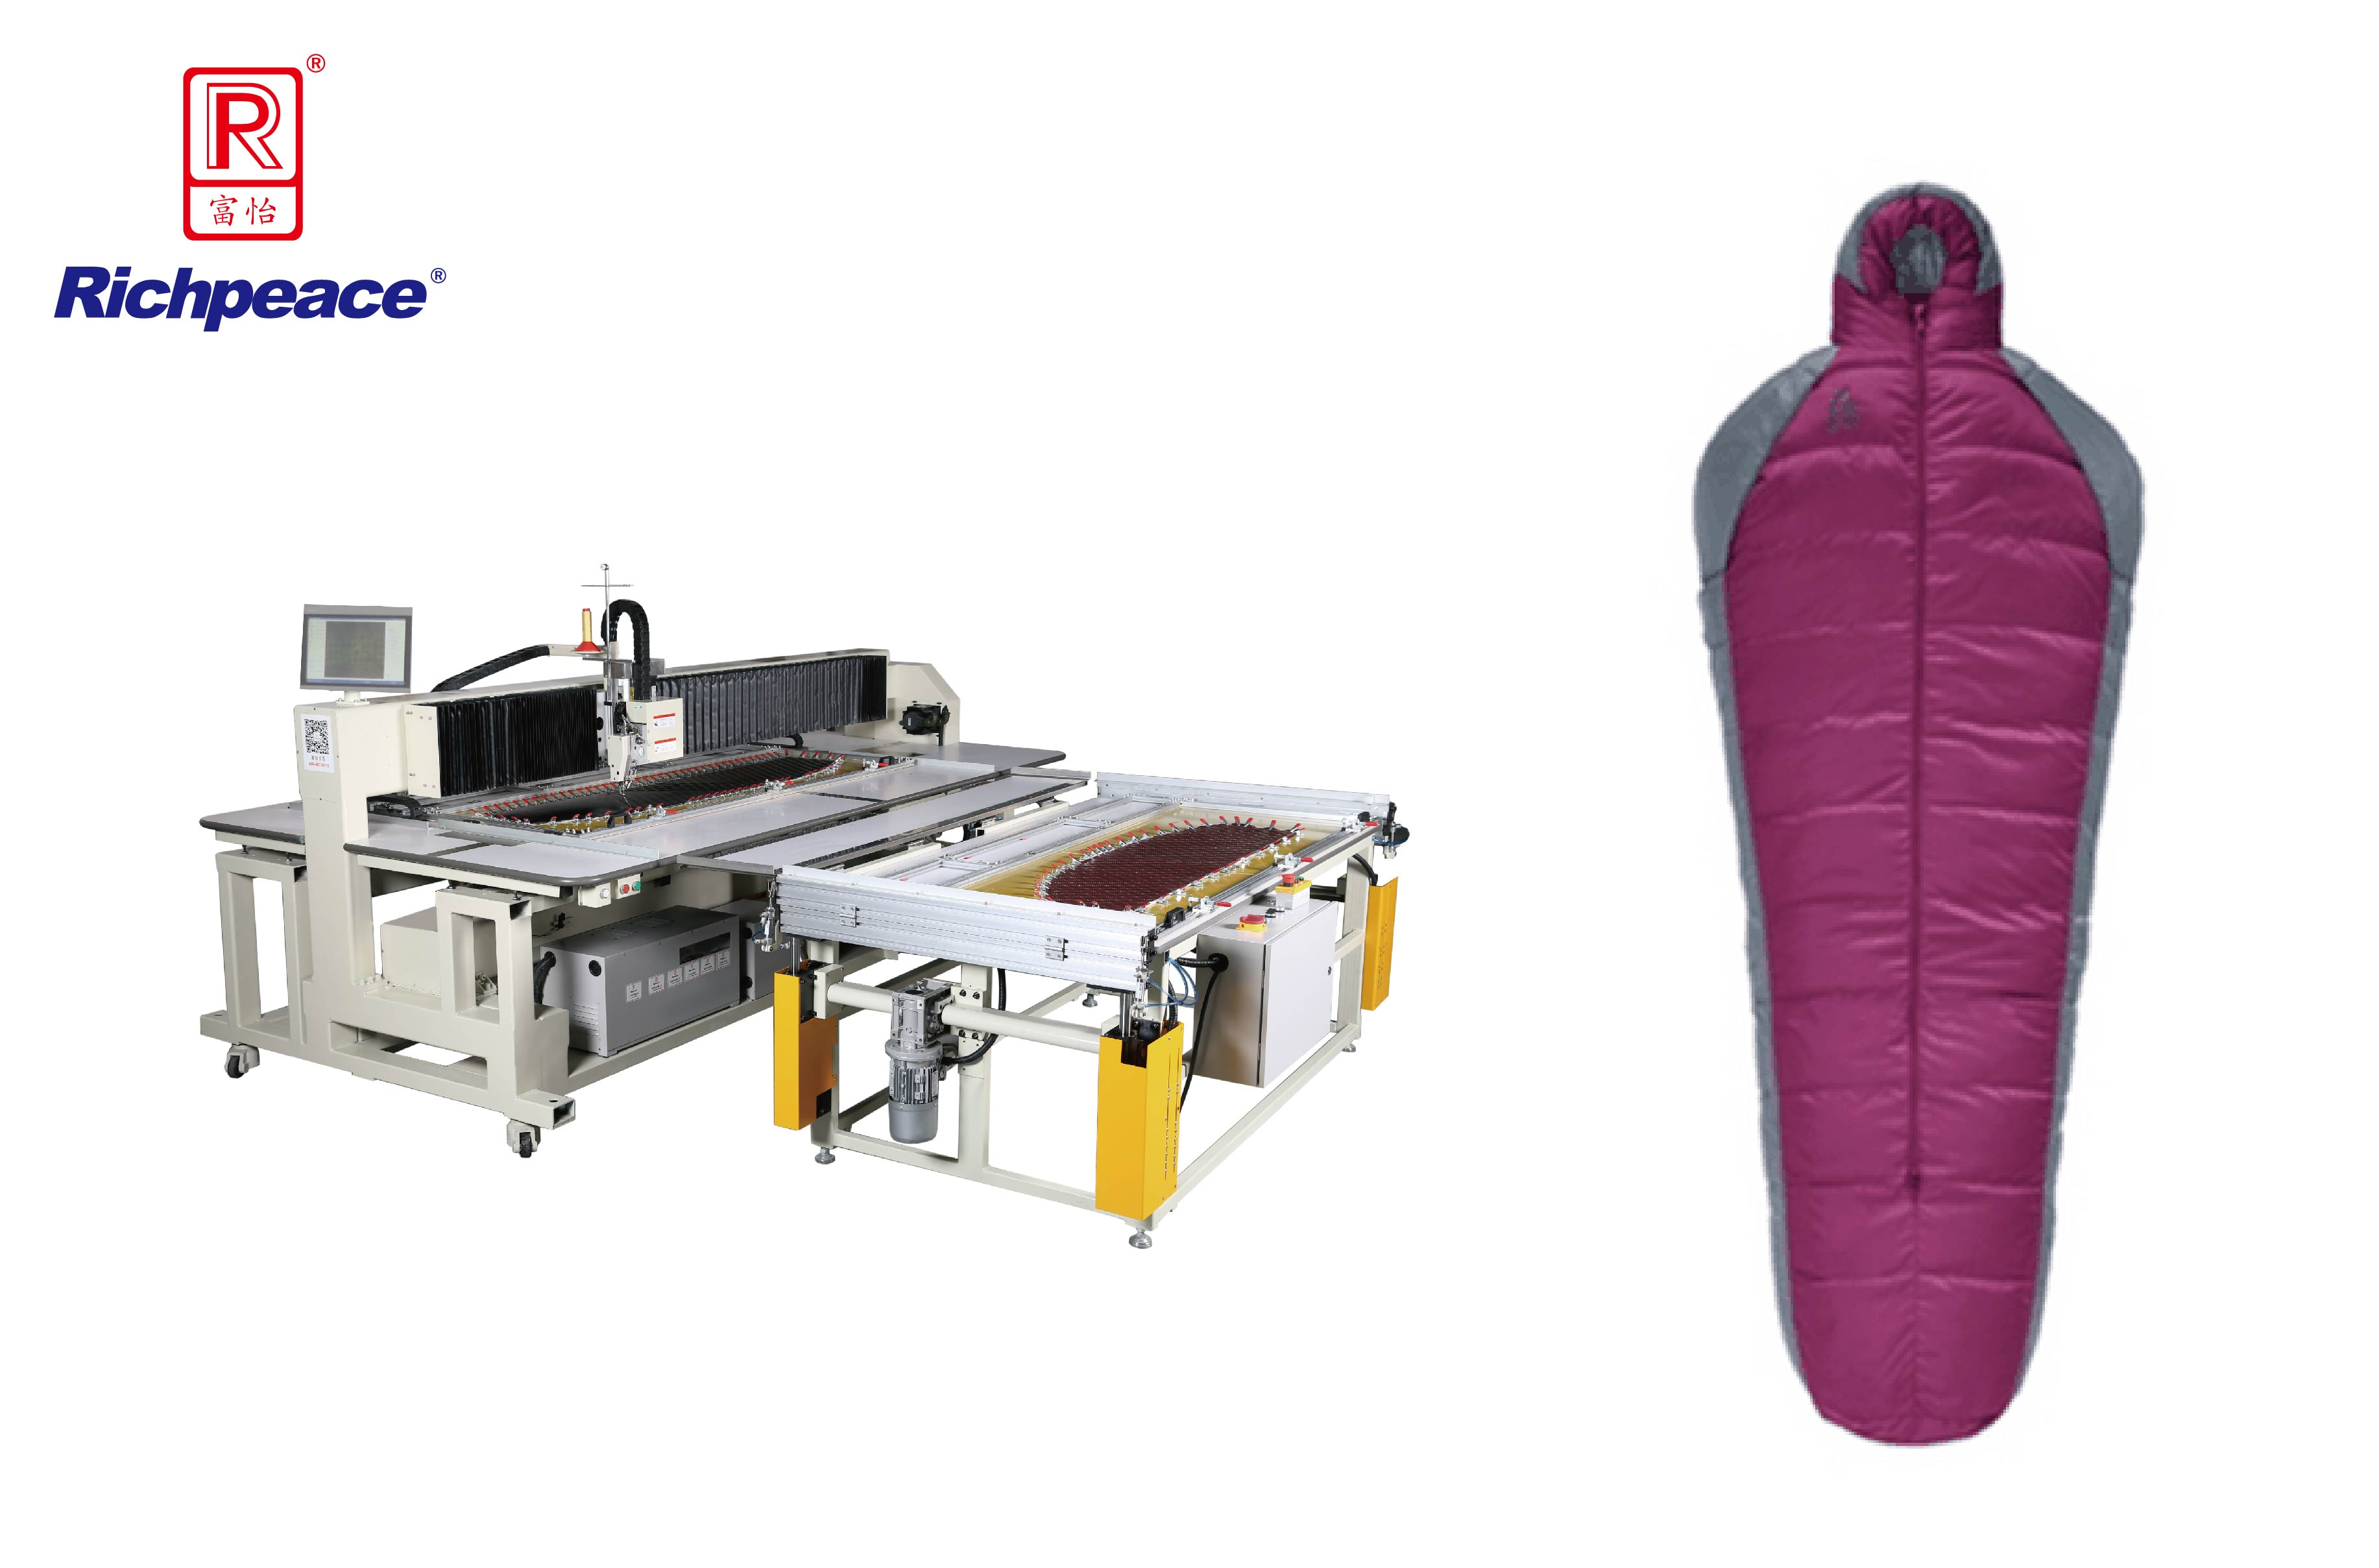 Richpeace Automatic Non-stop Sewing Machine